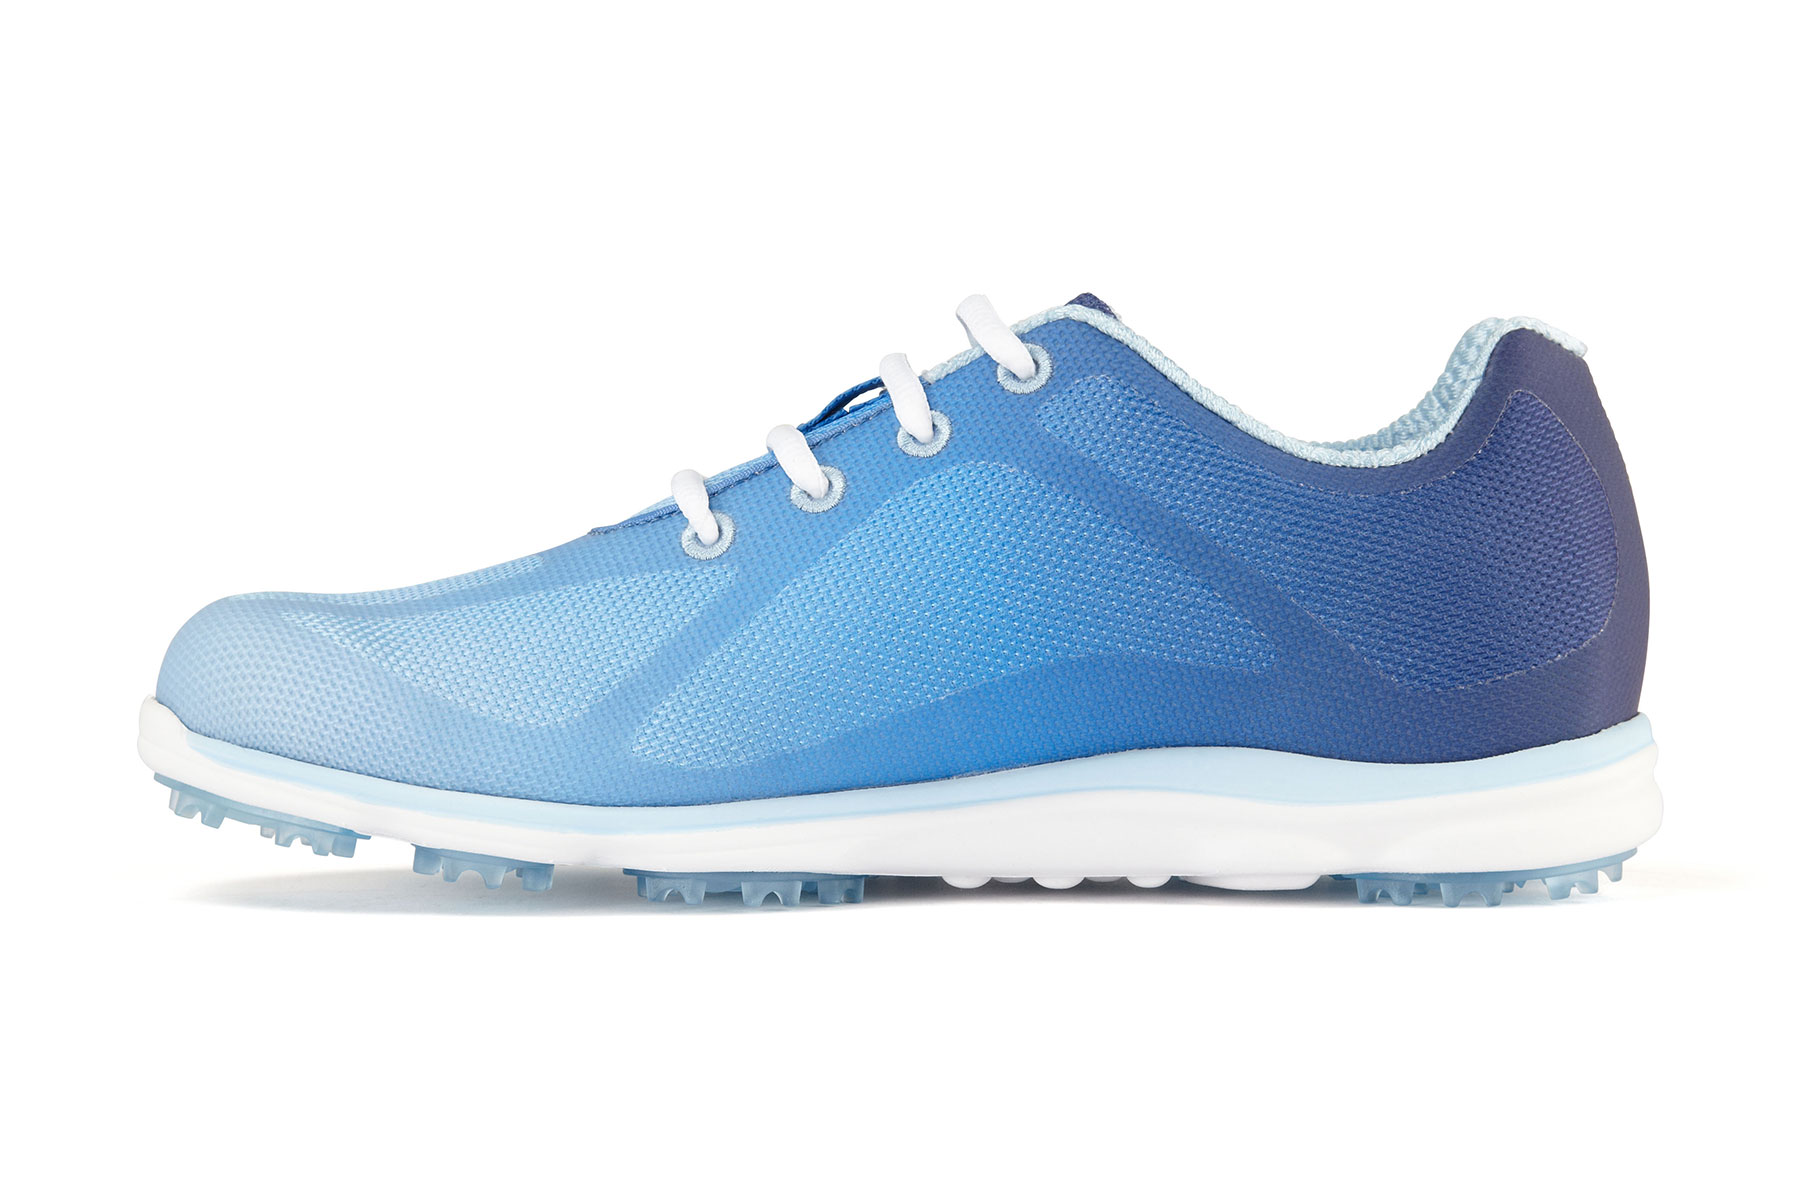 Footjoy Empower Golf Shoes